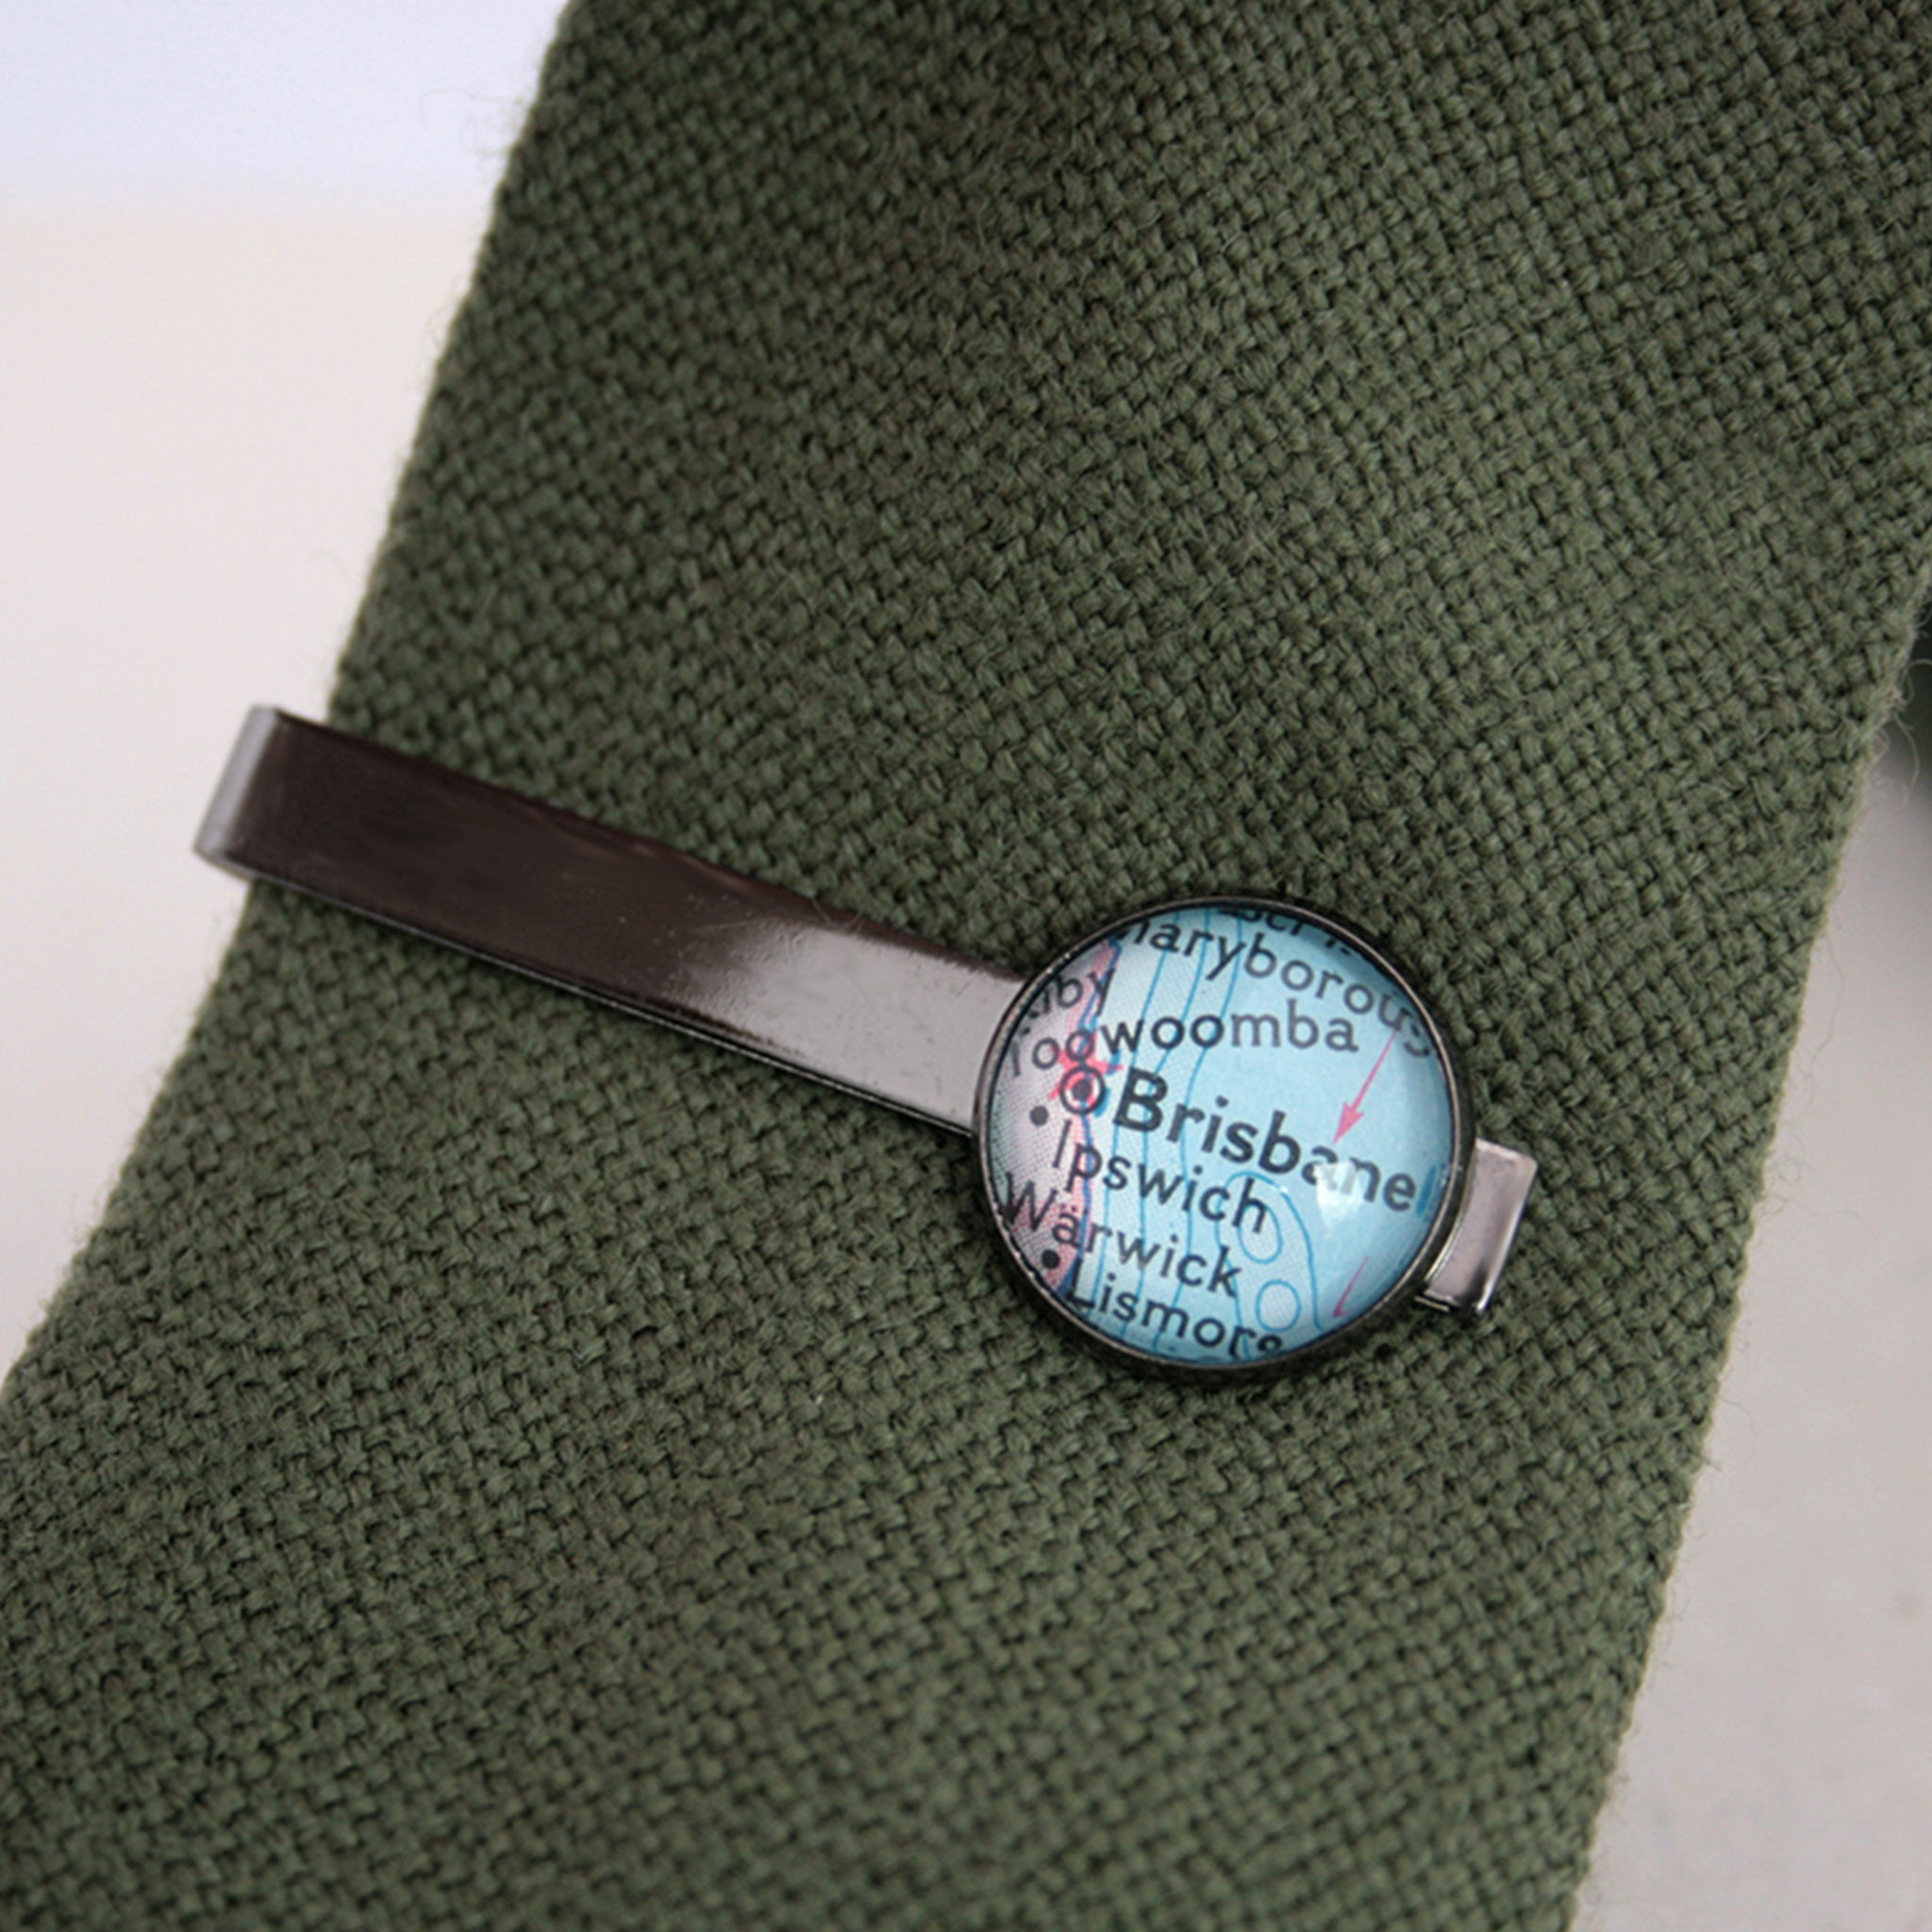 Personalised Tie Clip in gunmetal black color featuring map of Brisbane on a green tie